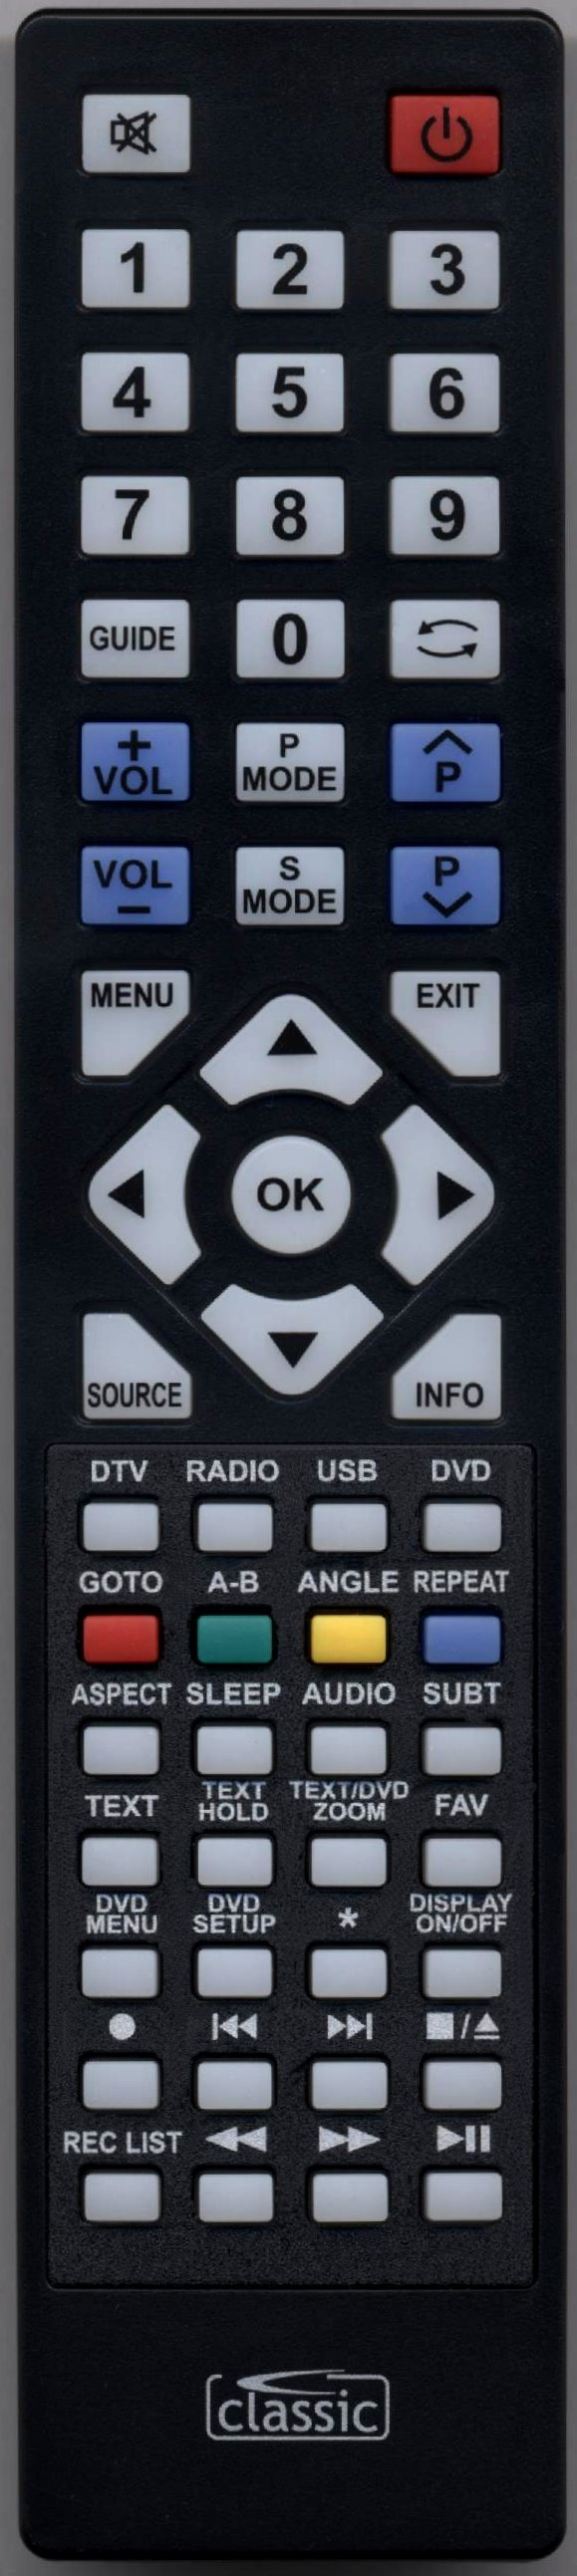 BLAUPUNKT 32/141I-GB-5B-HKUP-UK Remote Control Alternative